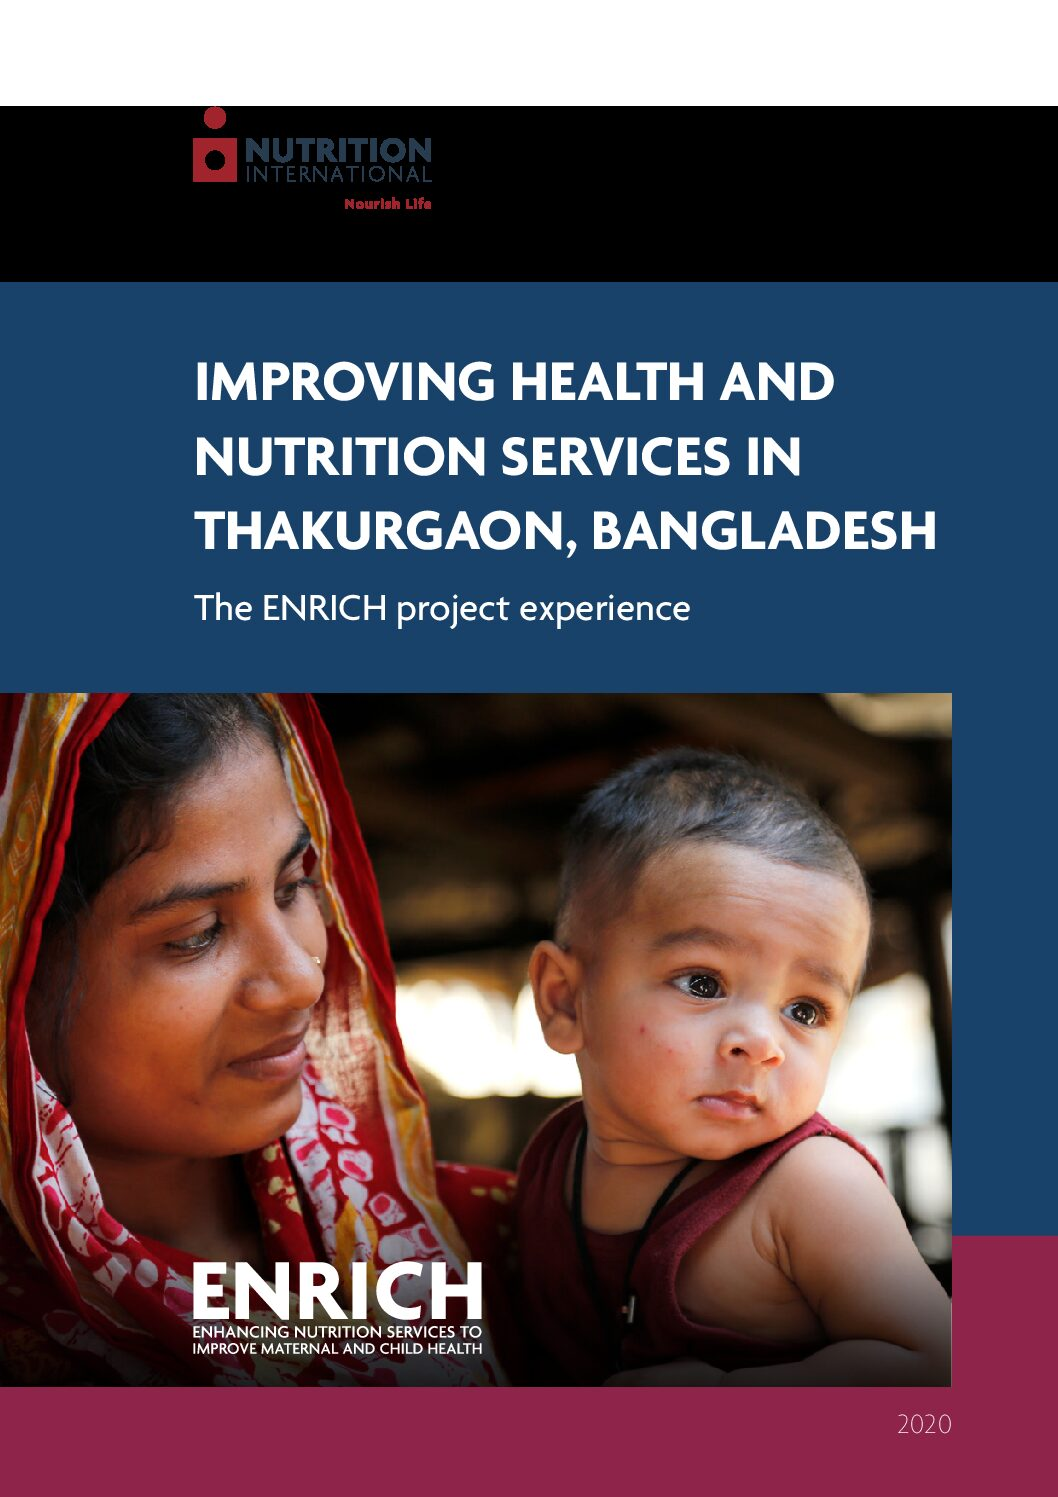 Improving Health and Nutrition Services in Thakurgaon, Bangladesh: The ENRICH project experience thumbnail